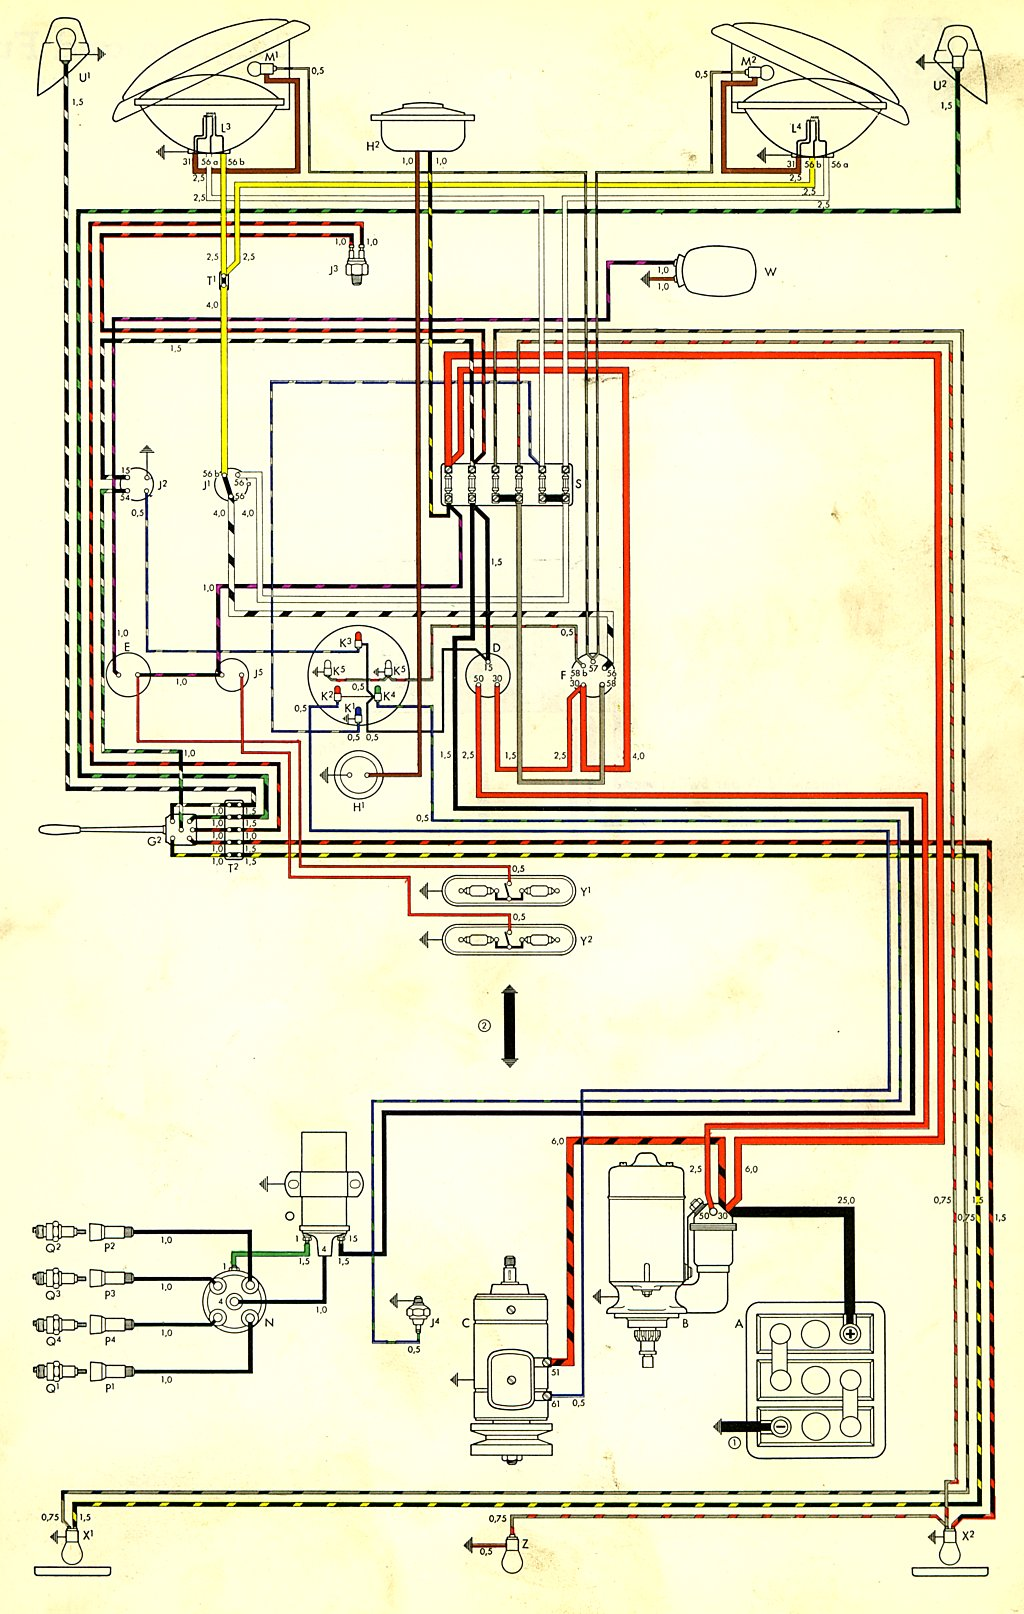 bus_59_USA bus wiring diagram vw wiring harness diagram \u2022 wiring diagrams j  at mifinder.co